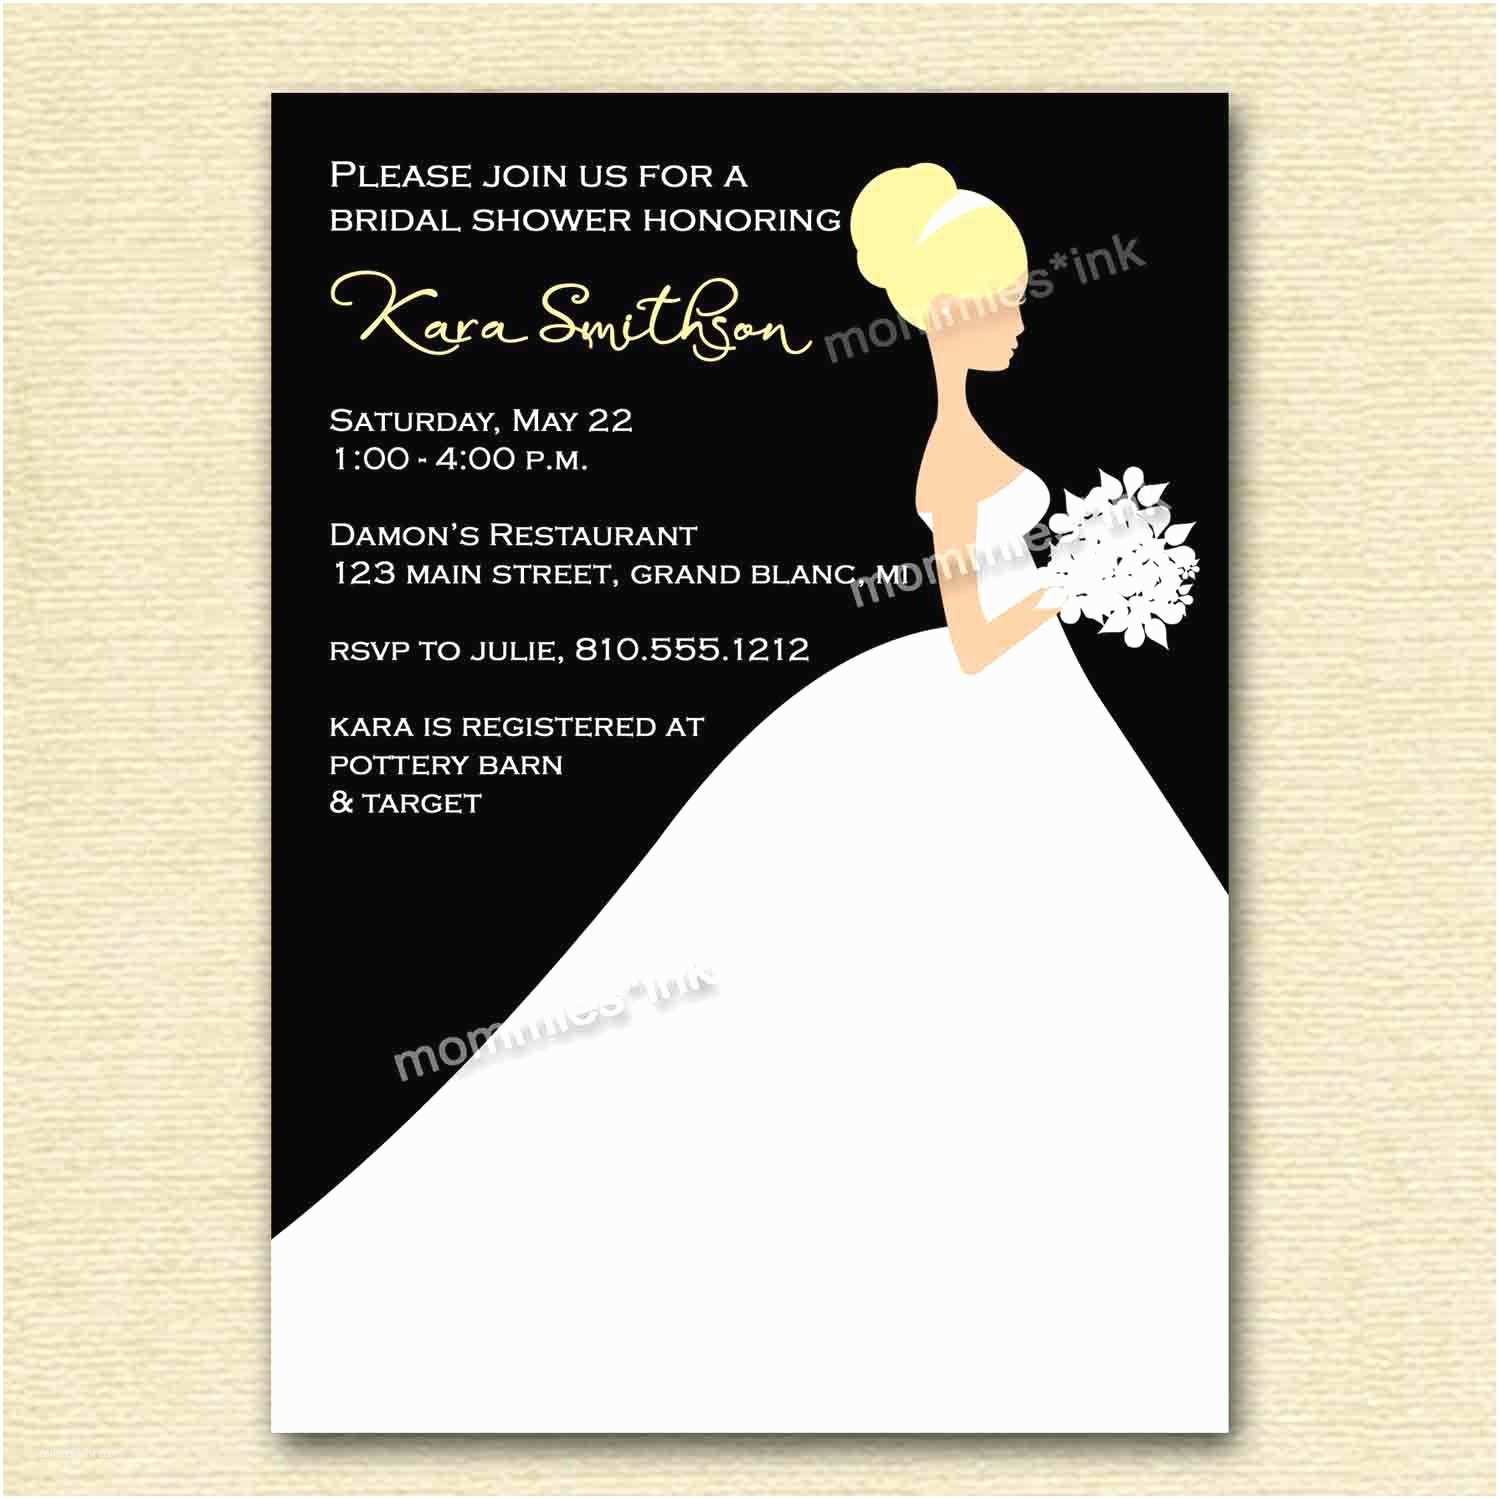 Make Your Own Wedding Shower Invitations Free Bridal Shower Invitations Bridal Shower Invitation Cards